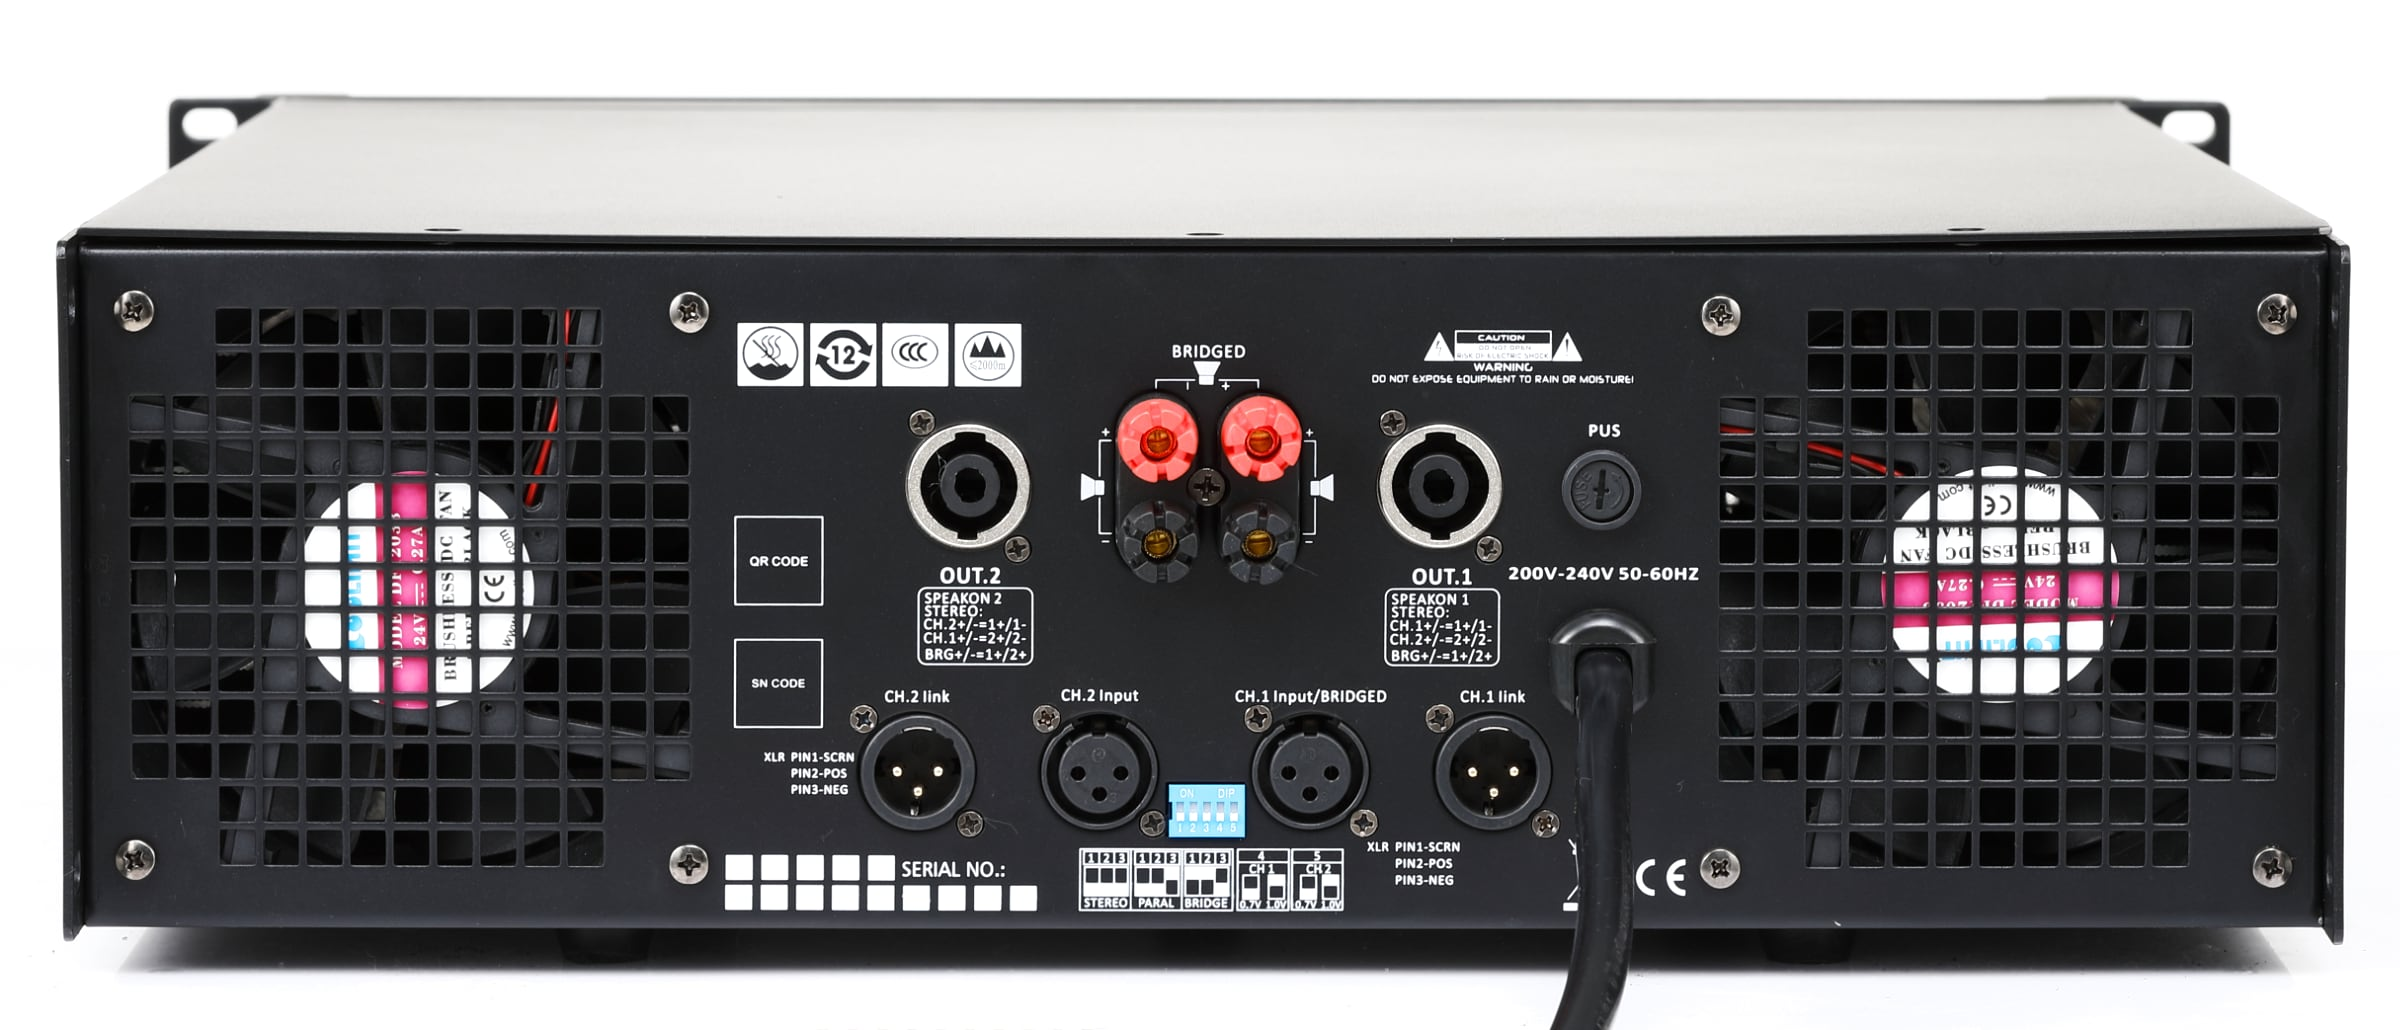 Công suất AAP DX-15002